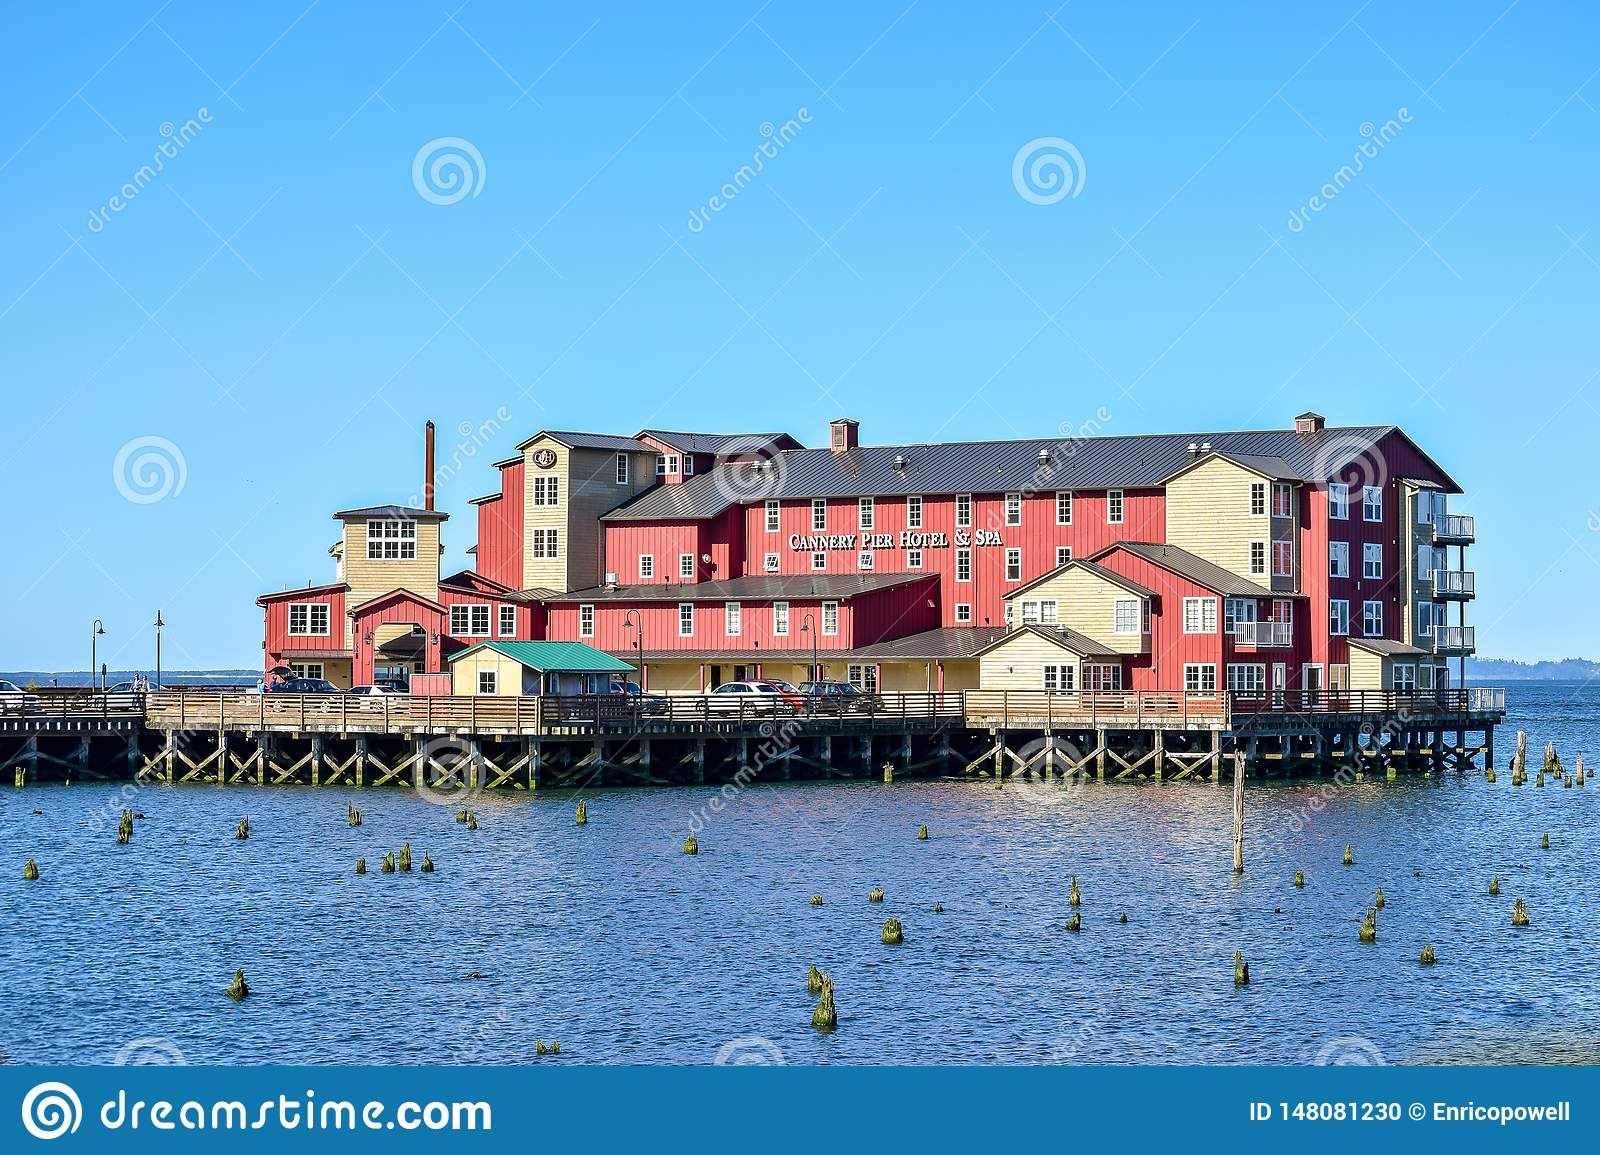 Cannery Pier Hotel and Spa on Columbia River in Astoria